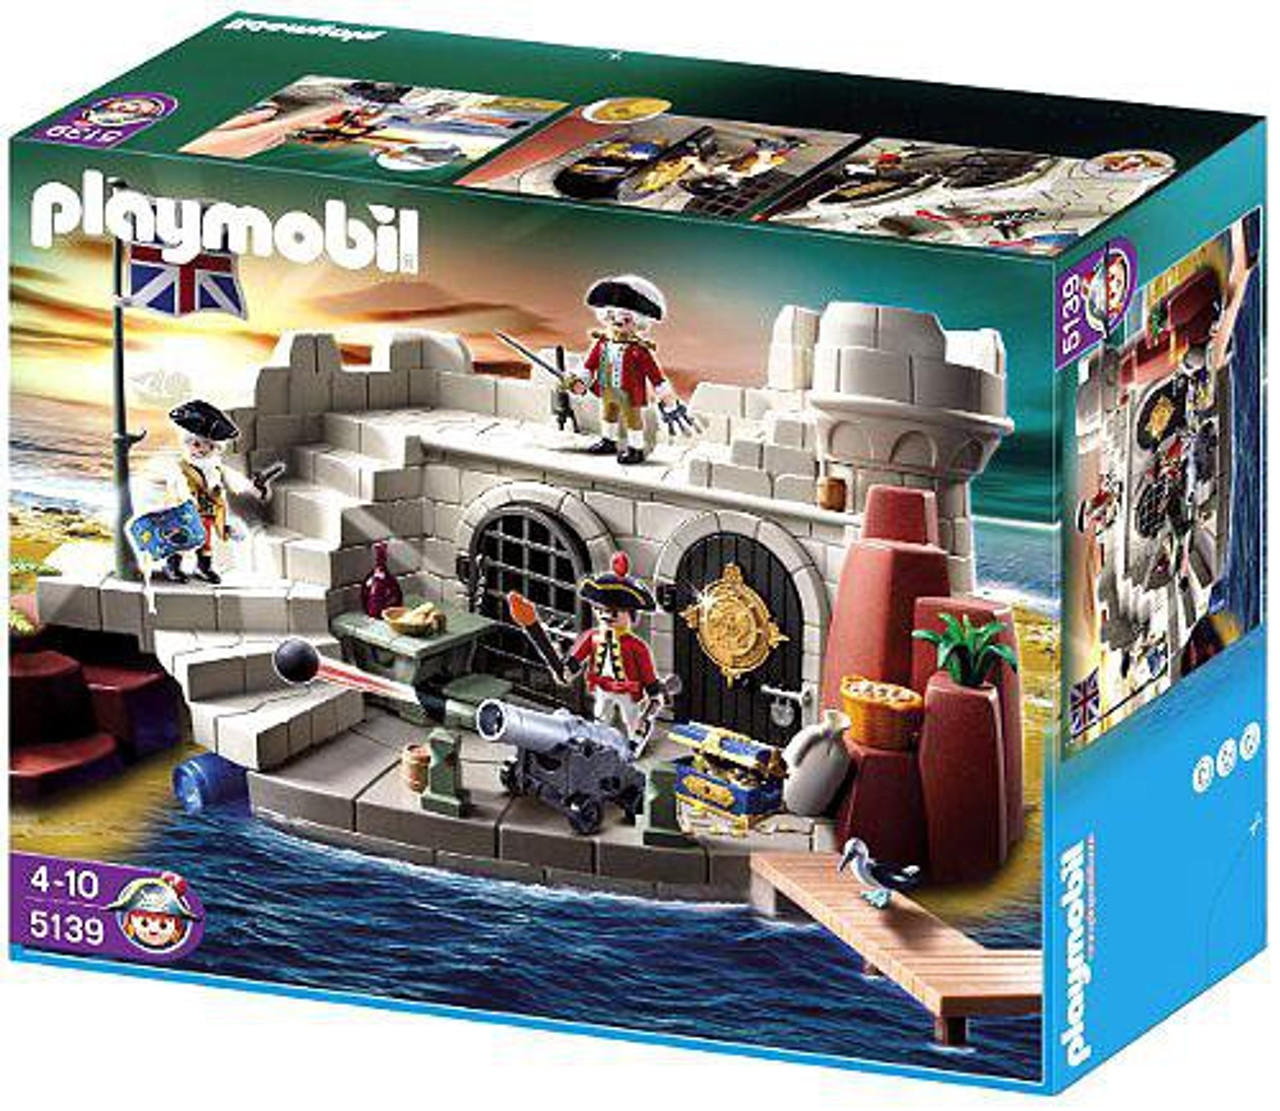 PLAYMOBIL Pirate Fort SuperSet Building Set Toys Games